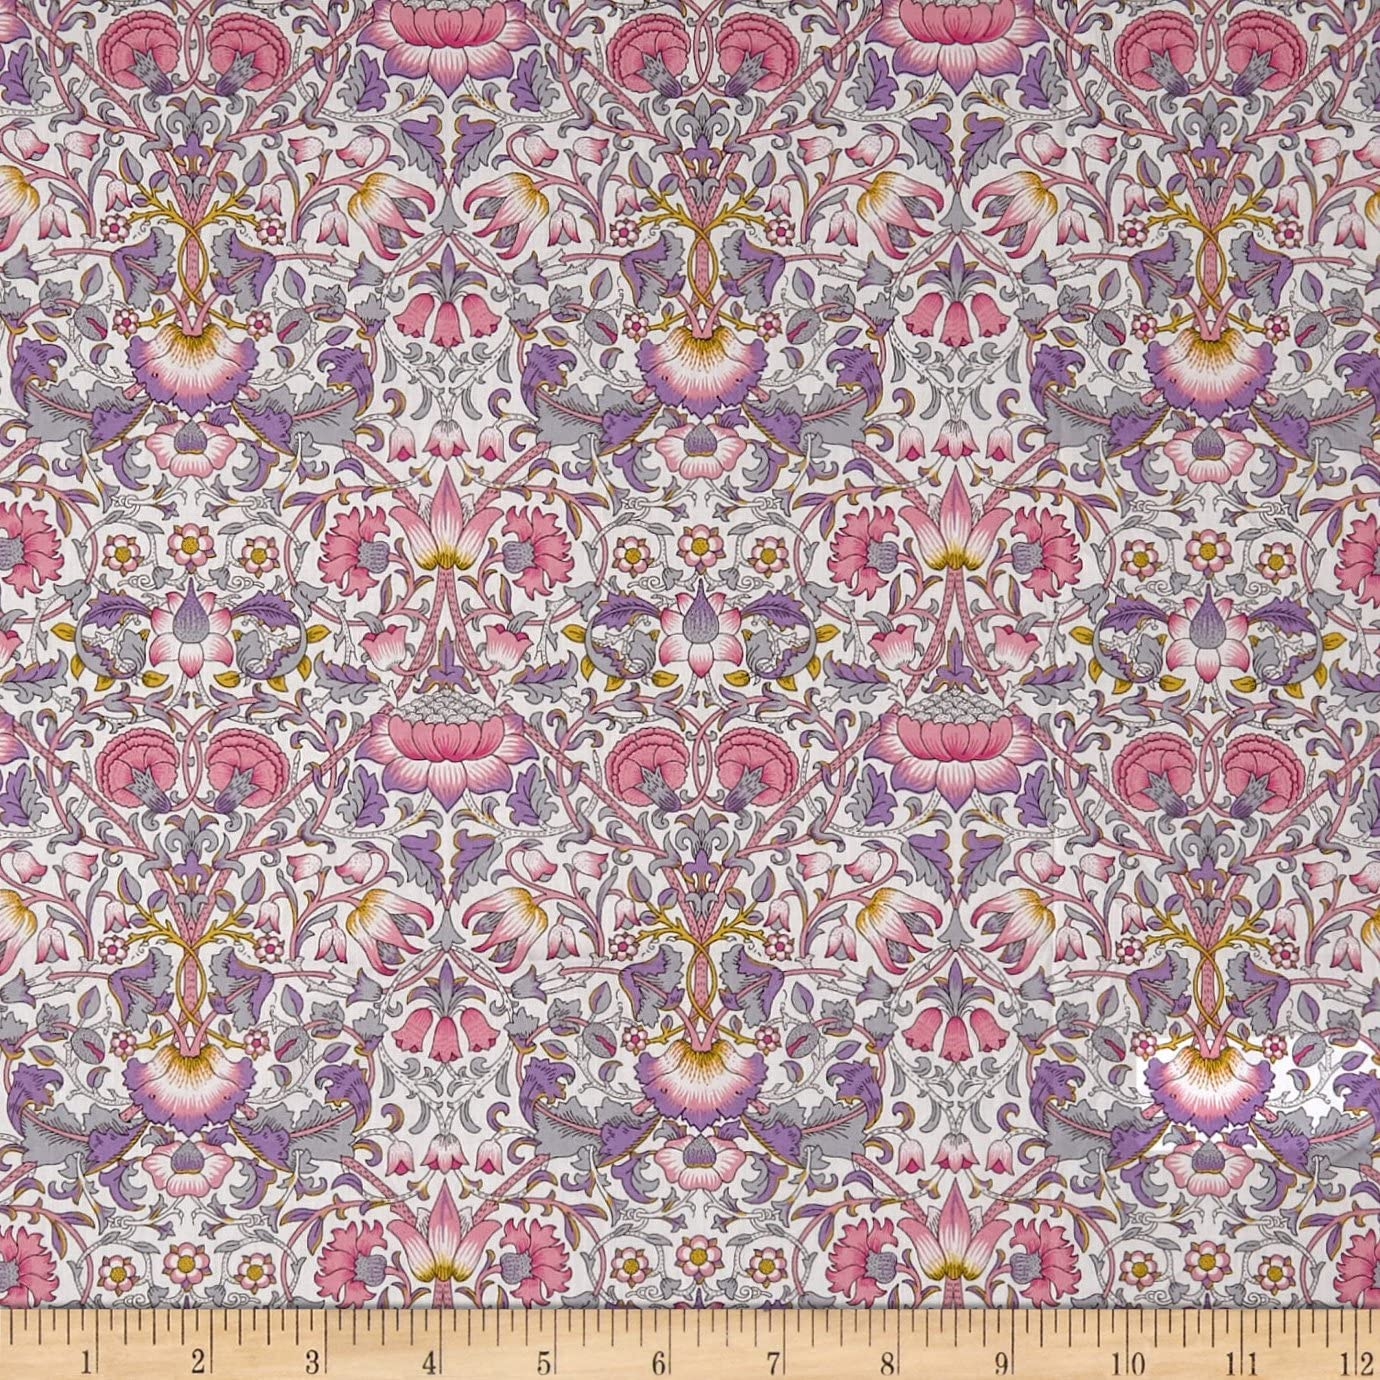 Liberty Fabrics Tana Lawn Lodden Pink Max 82% OFF the Yard Popular brand in world by Fabric